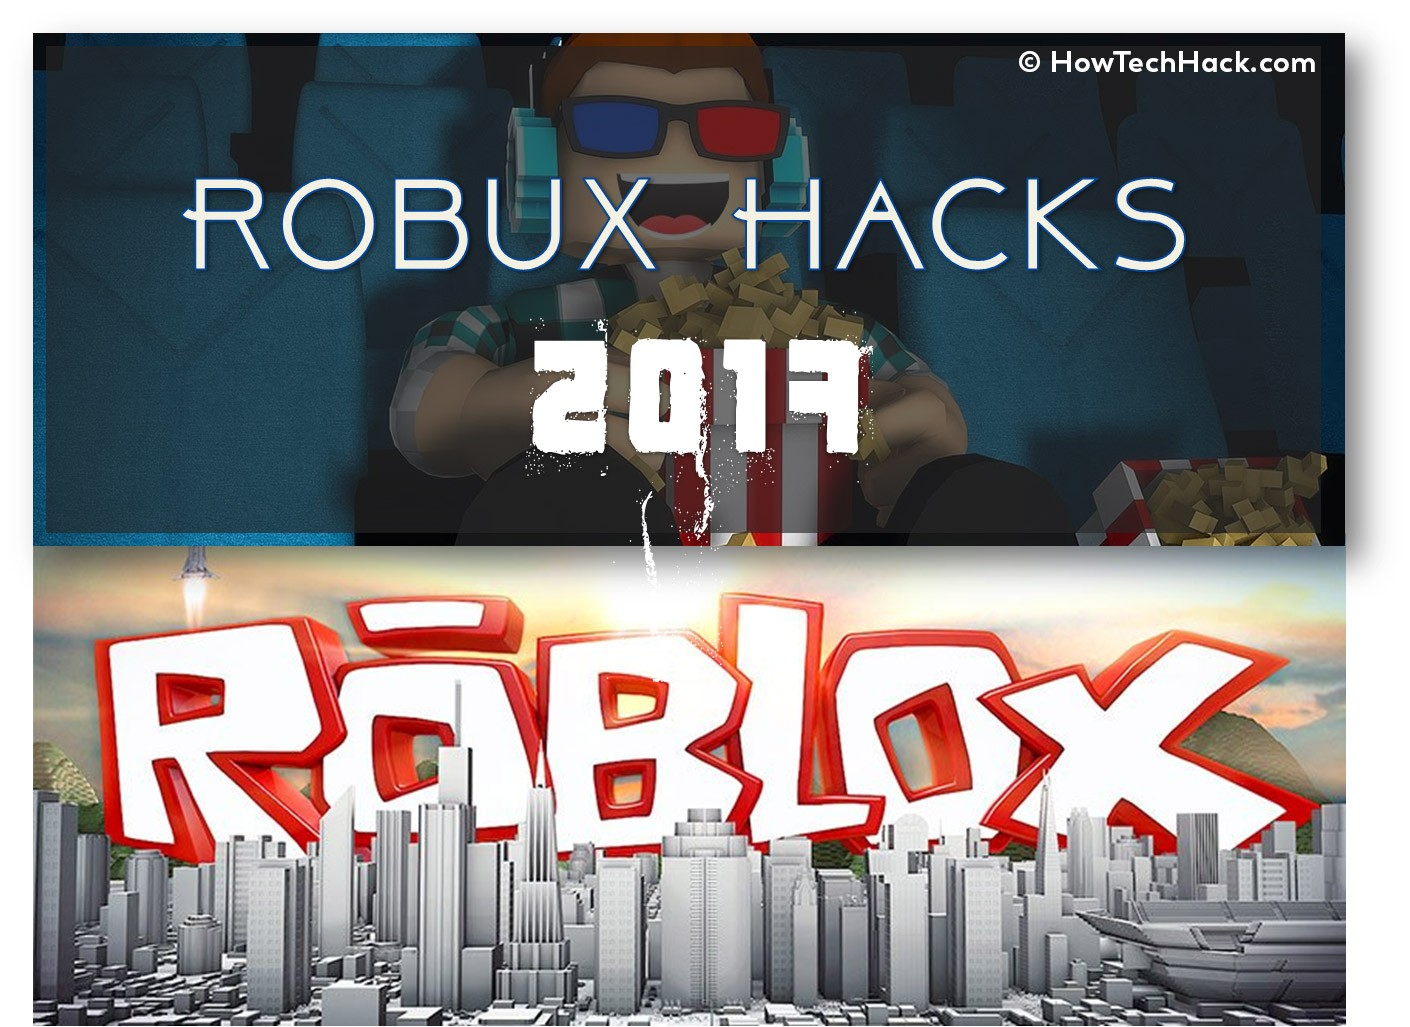 Working Unused Roblox Robux Codes 2019 Free Robux Hack Roblox Gift Card Codes 2020 No Human Verification